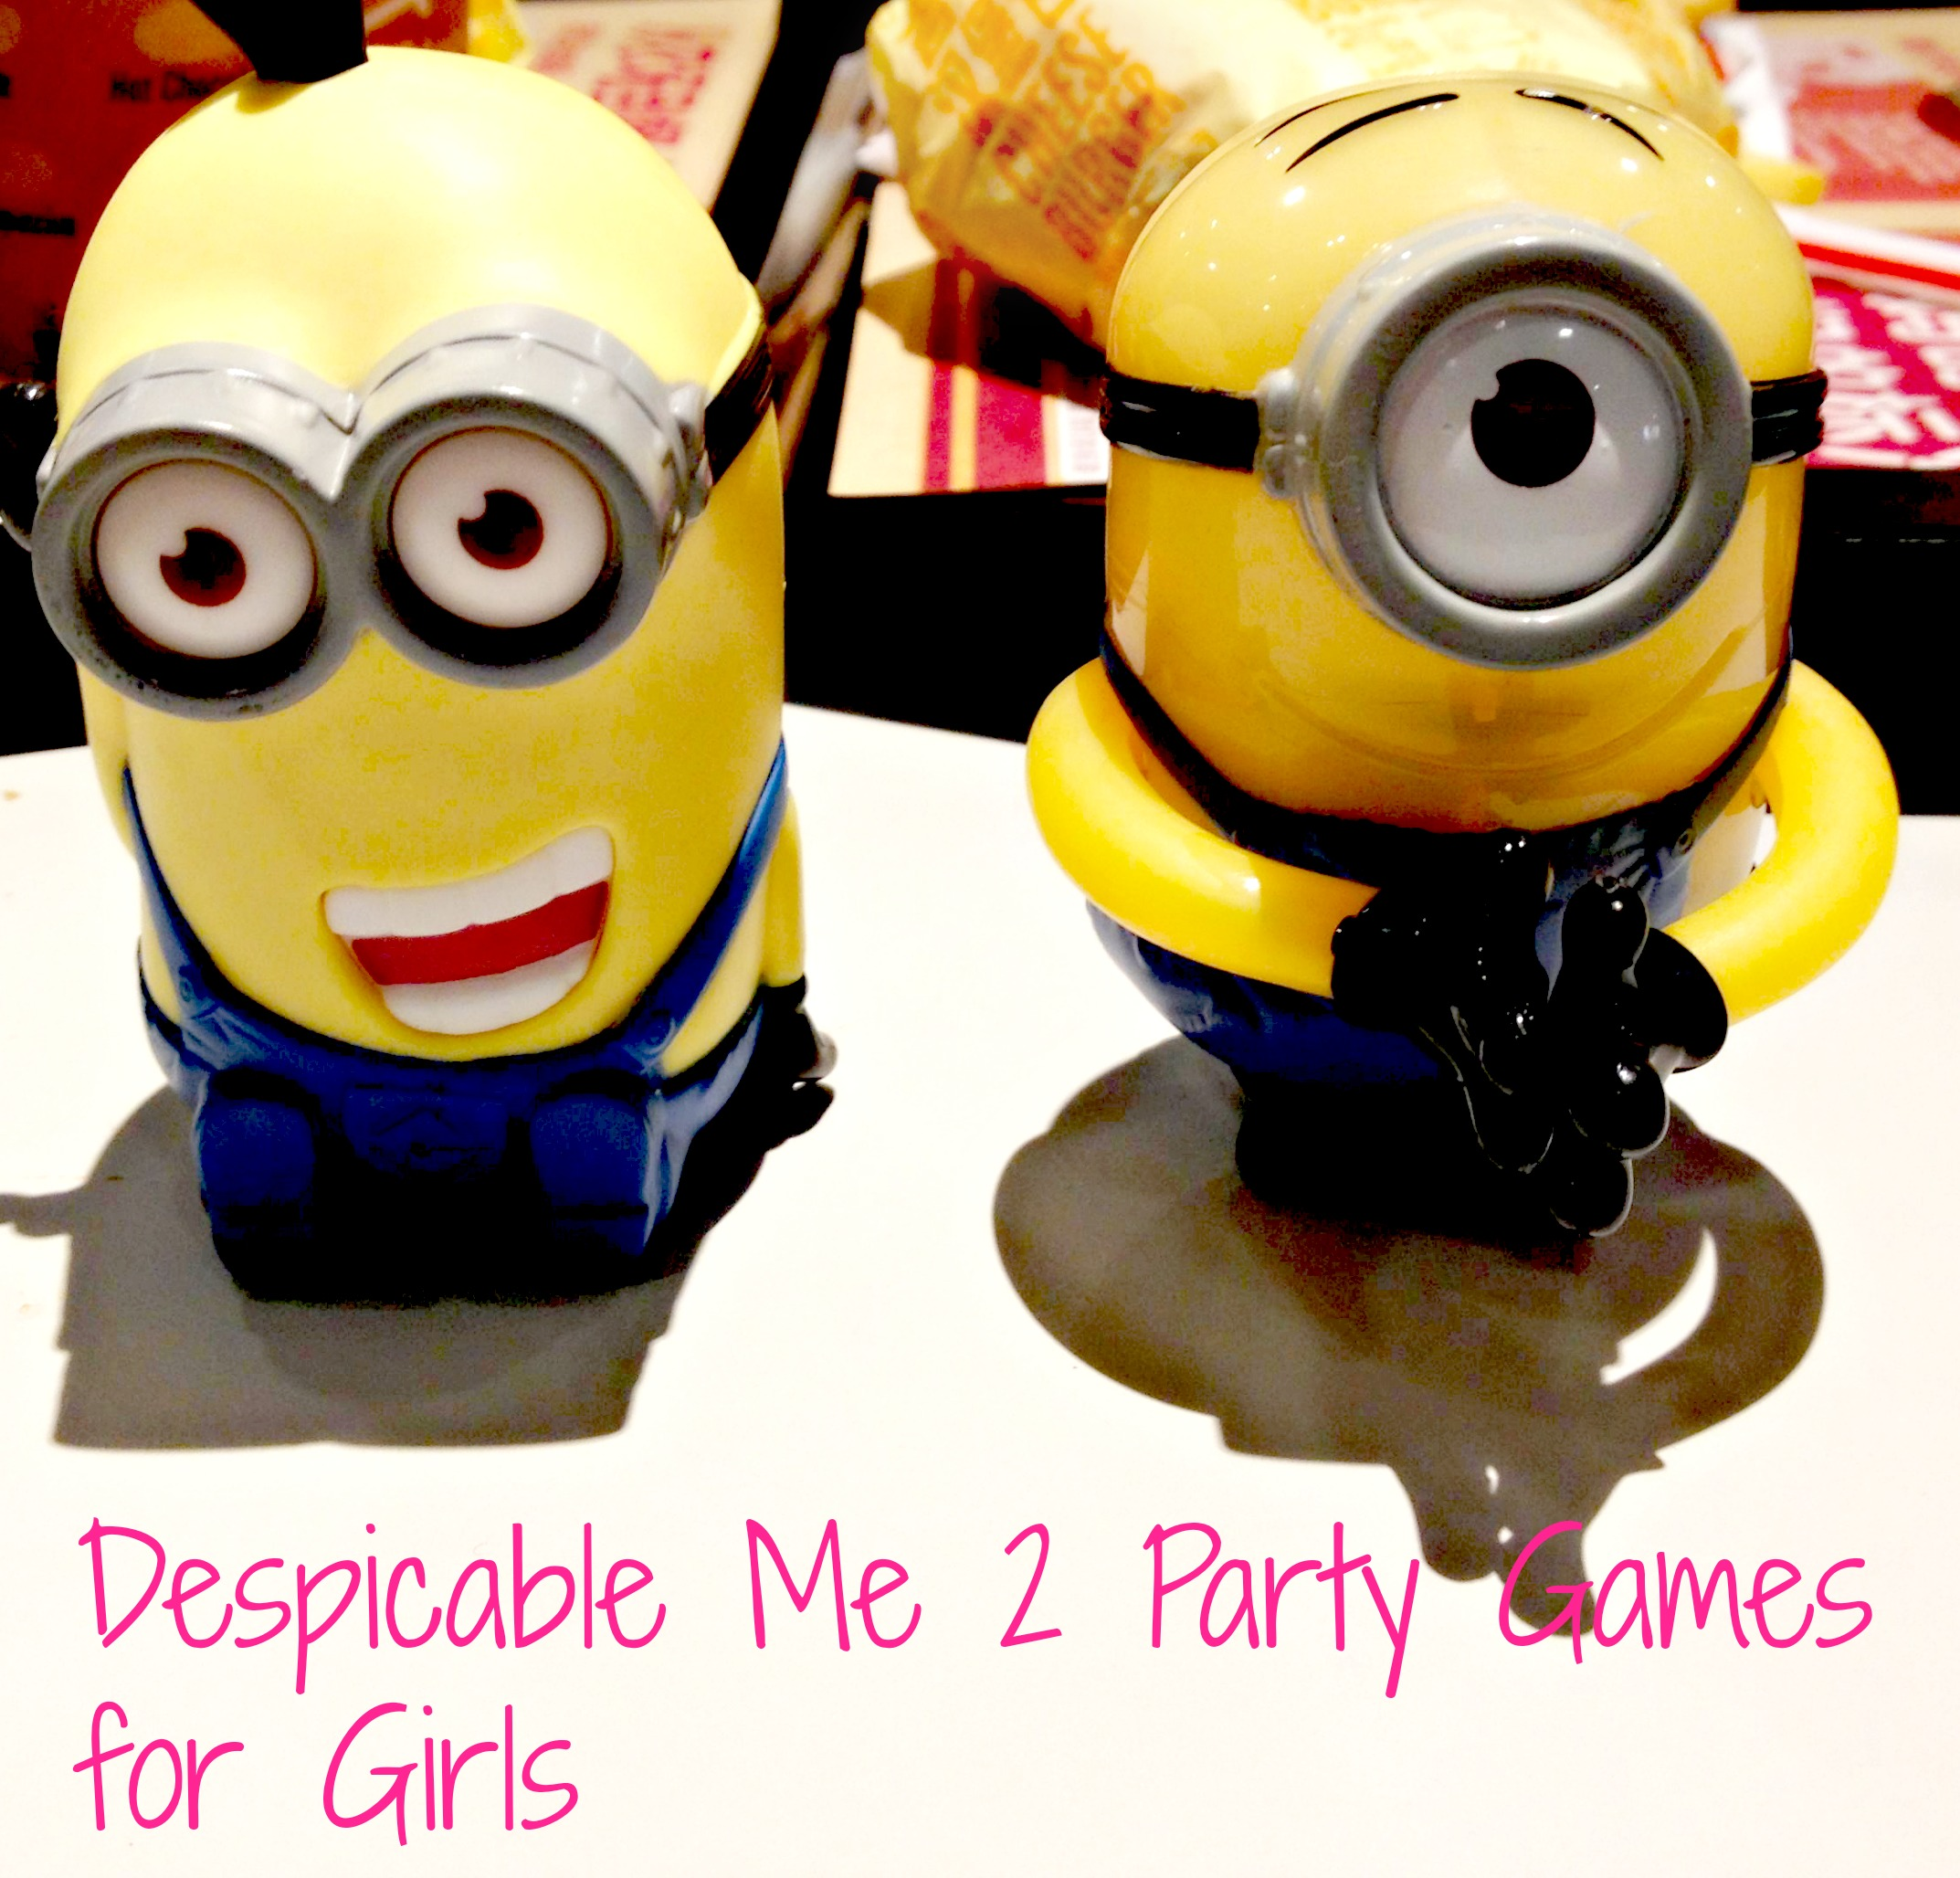 Despicable Me 2 Party Games For Girls